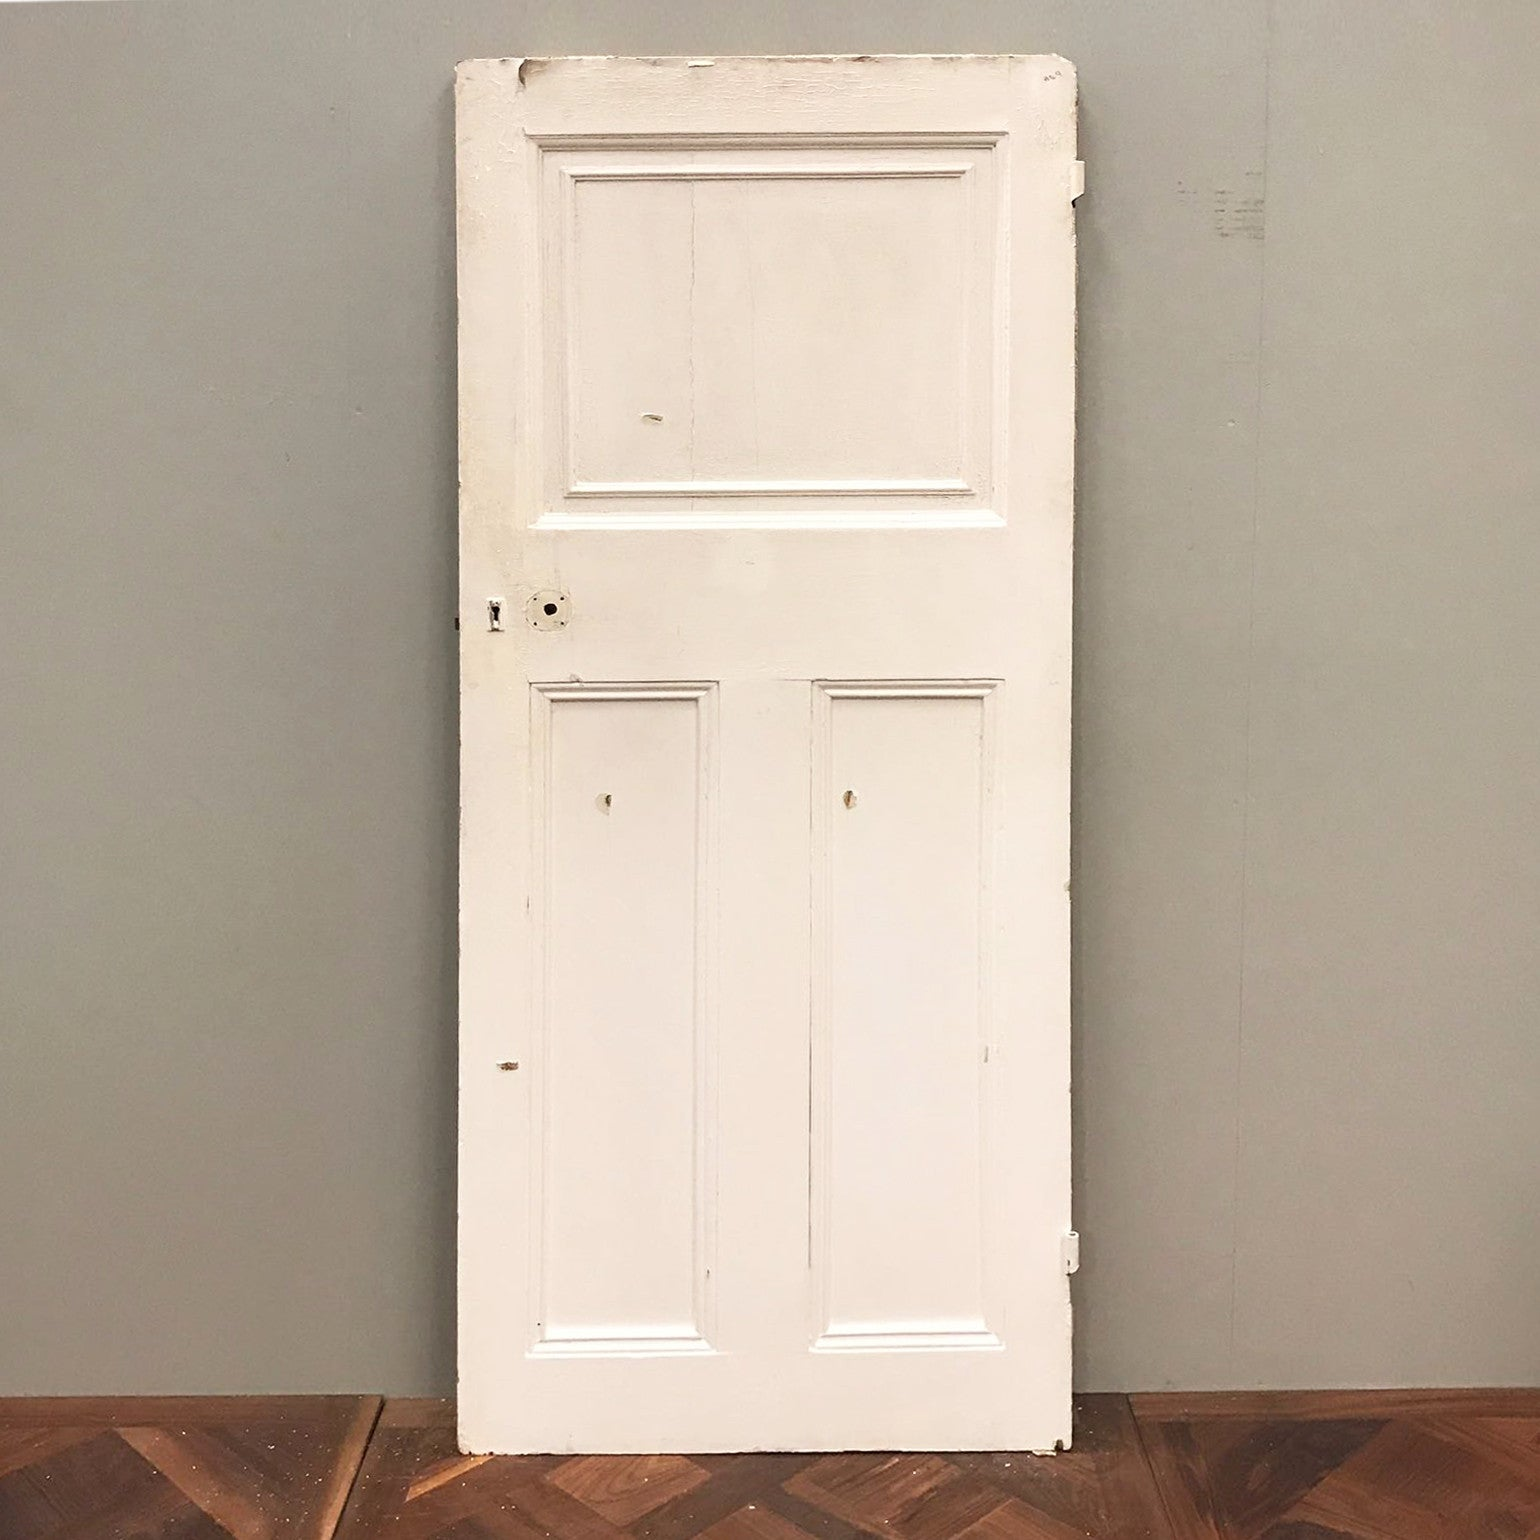 Antique Edwardian Three Panel Door - 200cm x 80cm x 4.5cm - architectural-forum